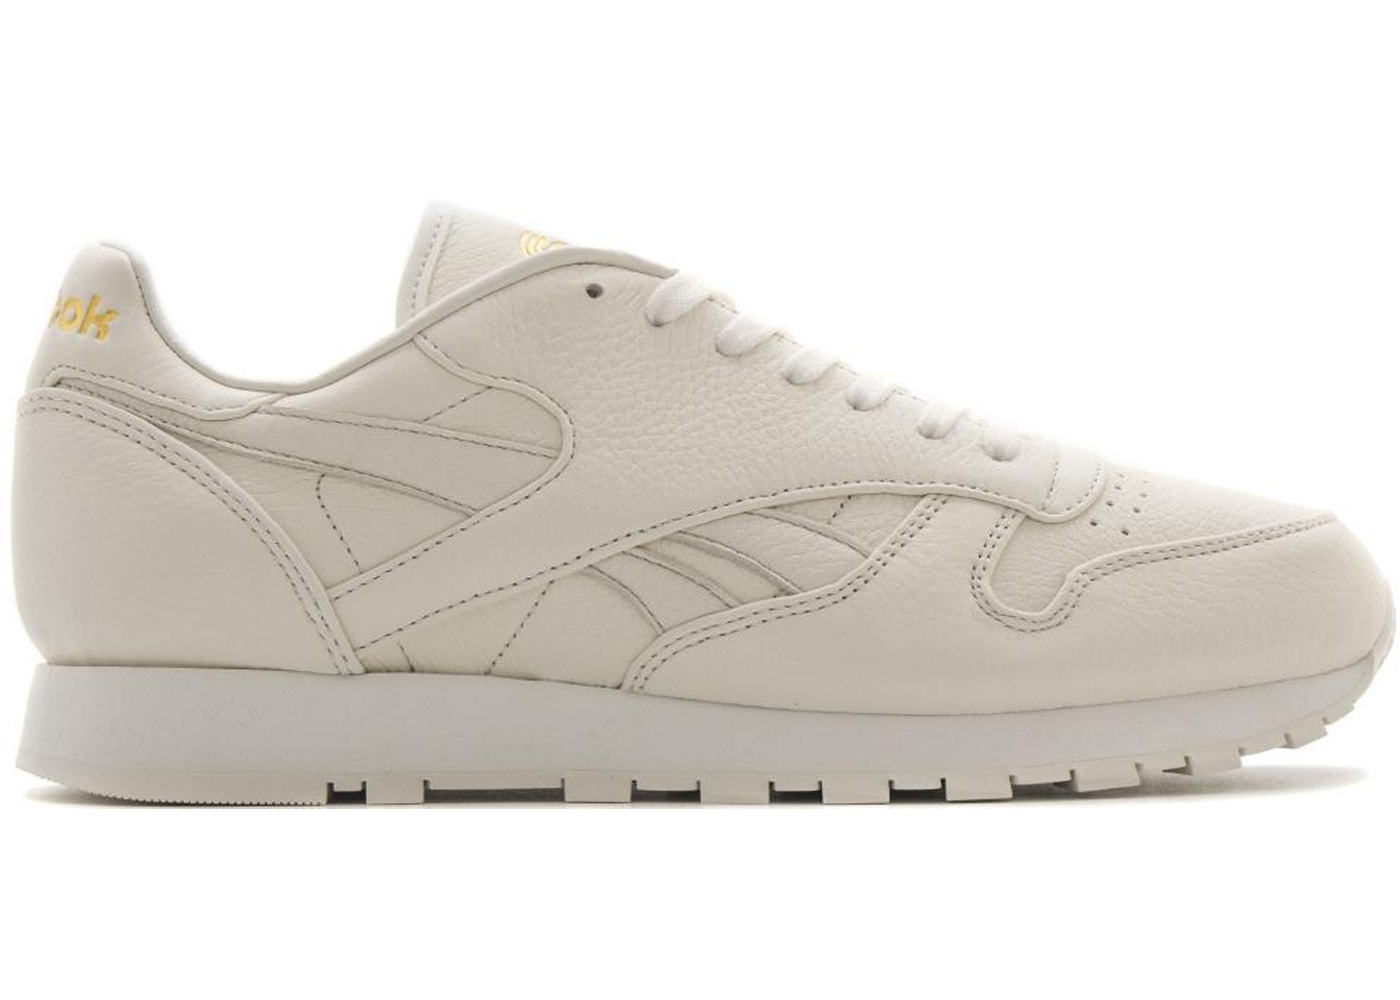 Reebok Classic Leather Sneakersnstuff Premium CN1856